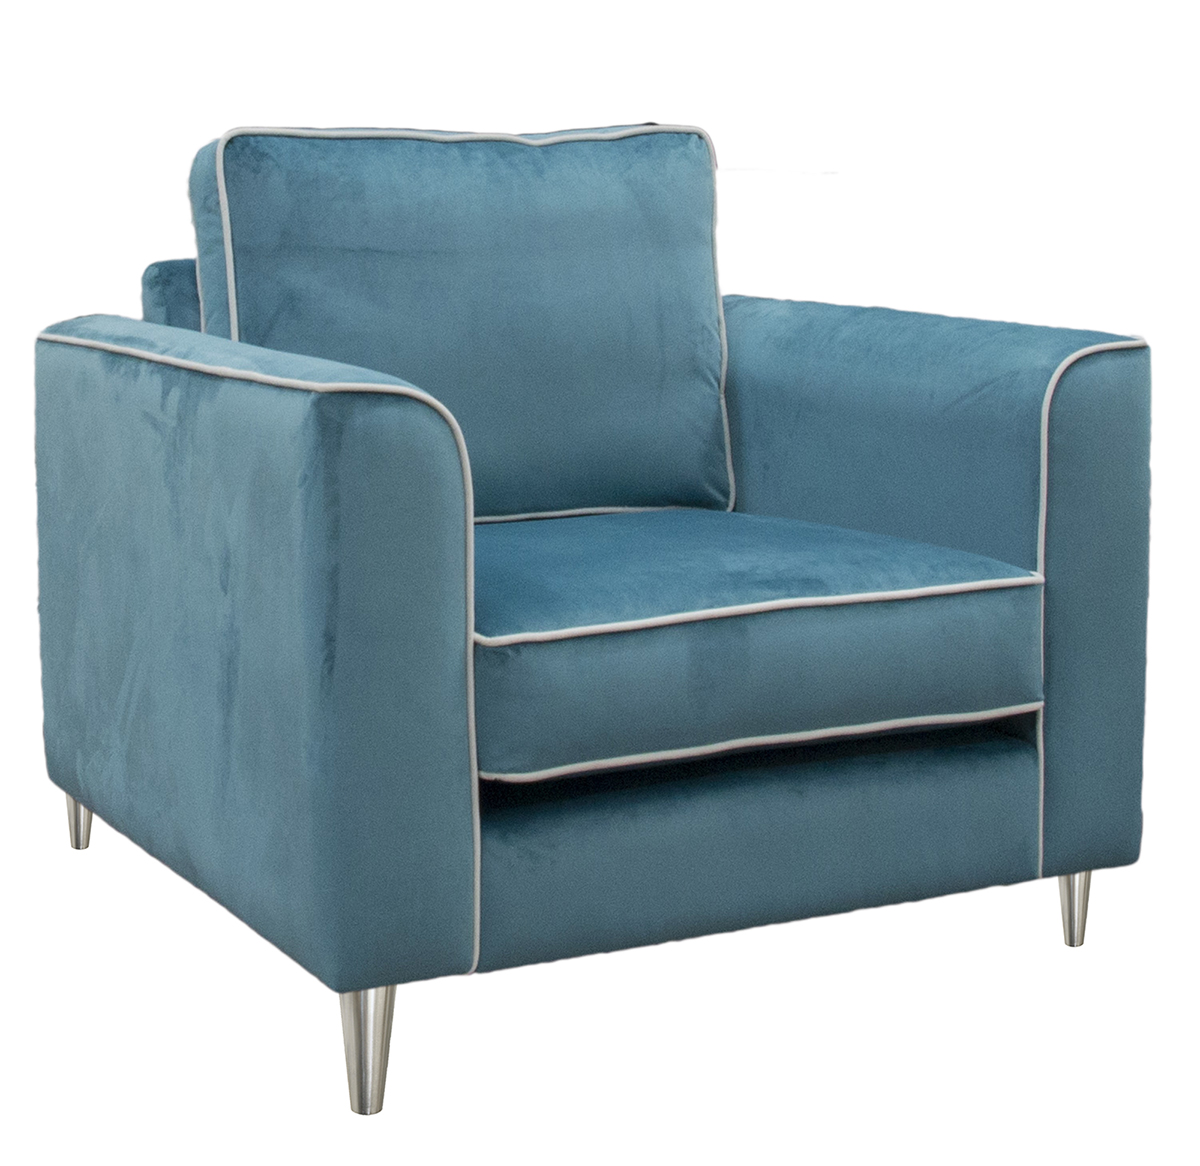 Nolan chair in  Luxor TurquoiseSilver Collection Fabric